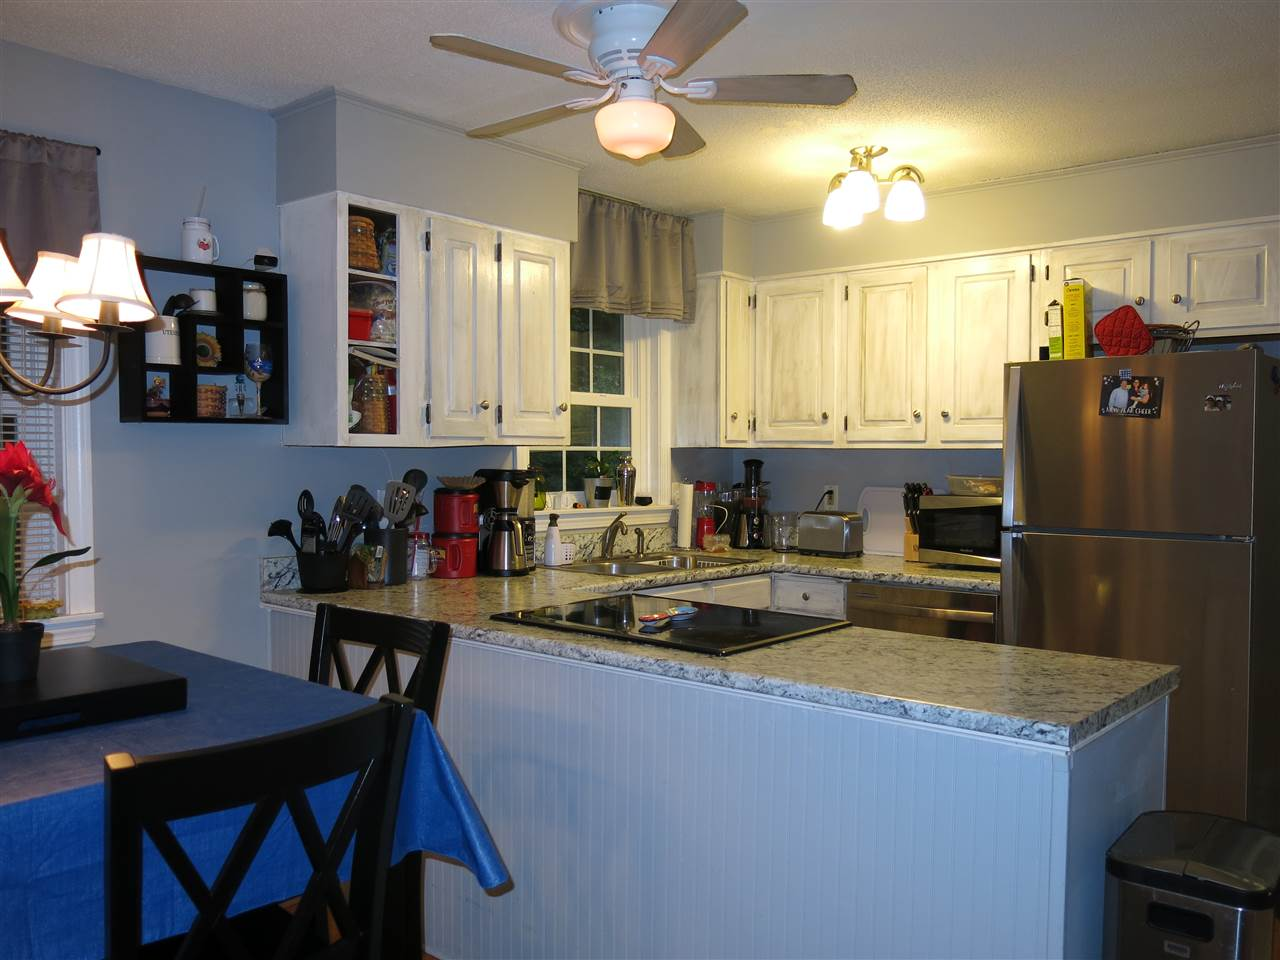 Dining Area in Kitchen